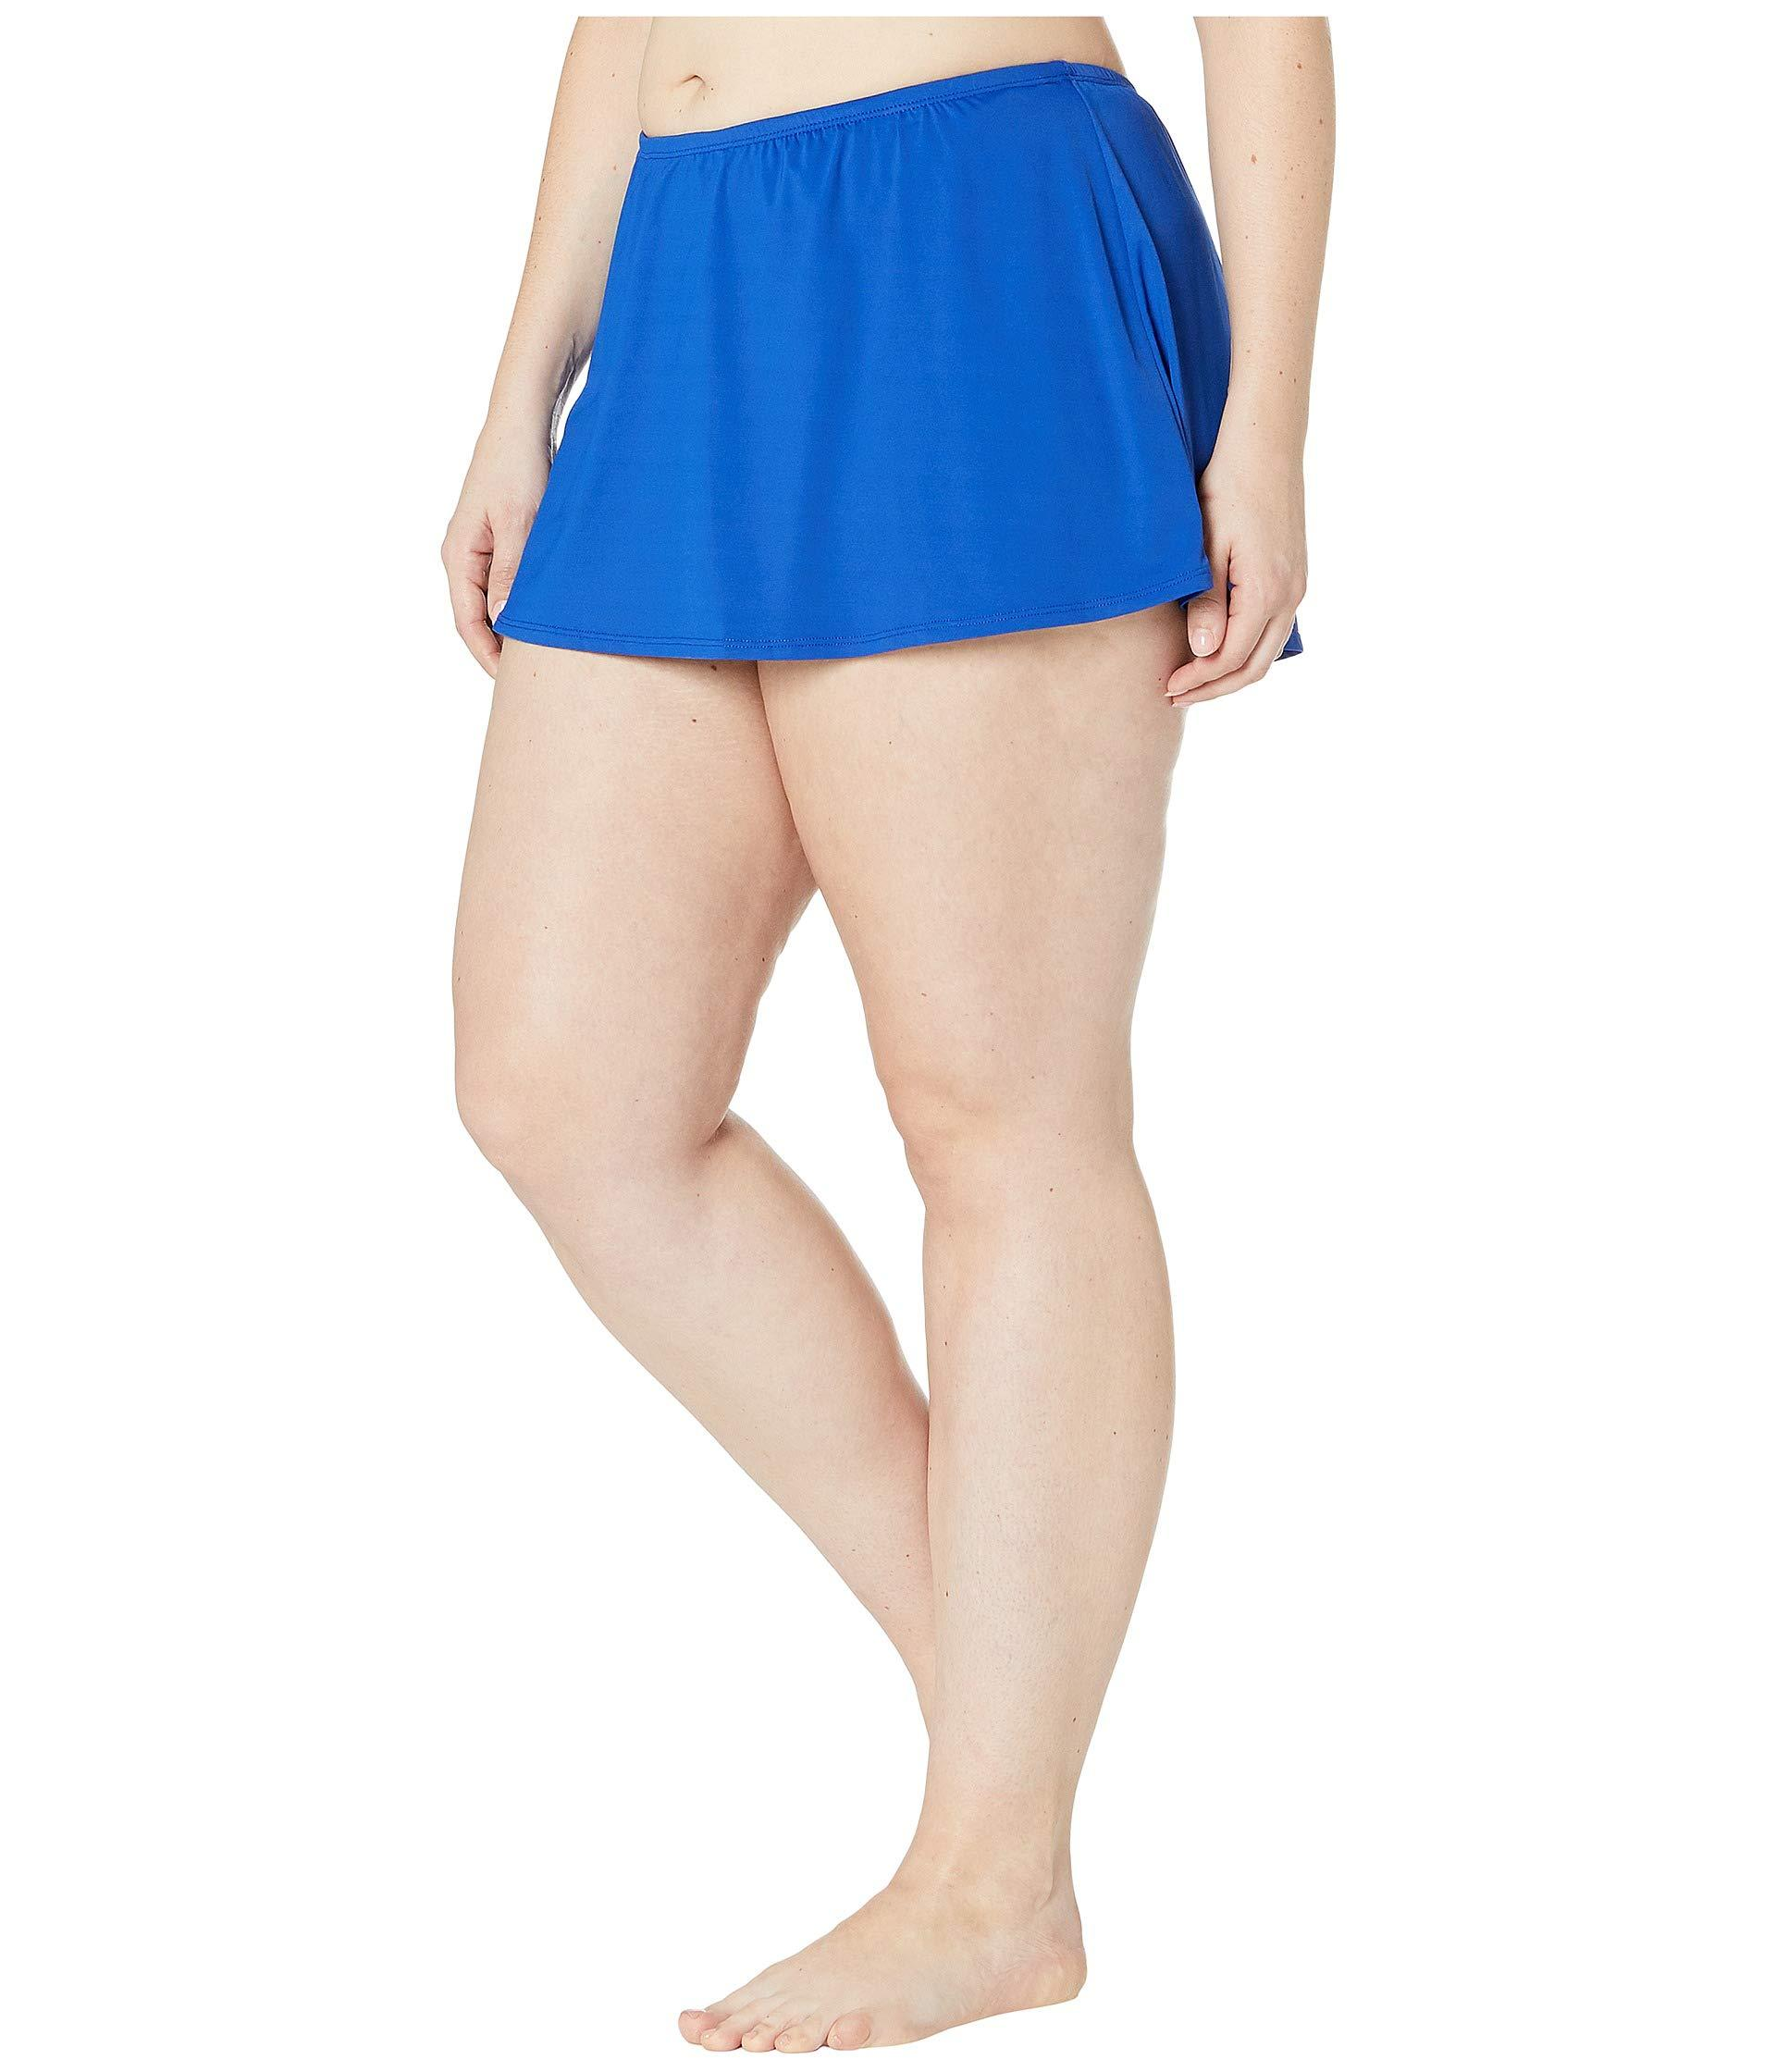 c500c22f059 Lyst - 24th   Ocean Plus Size Solids Mid Waist Skirted Pant Bottoms  (cobalt) Women s Swimwear in Blue